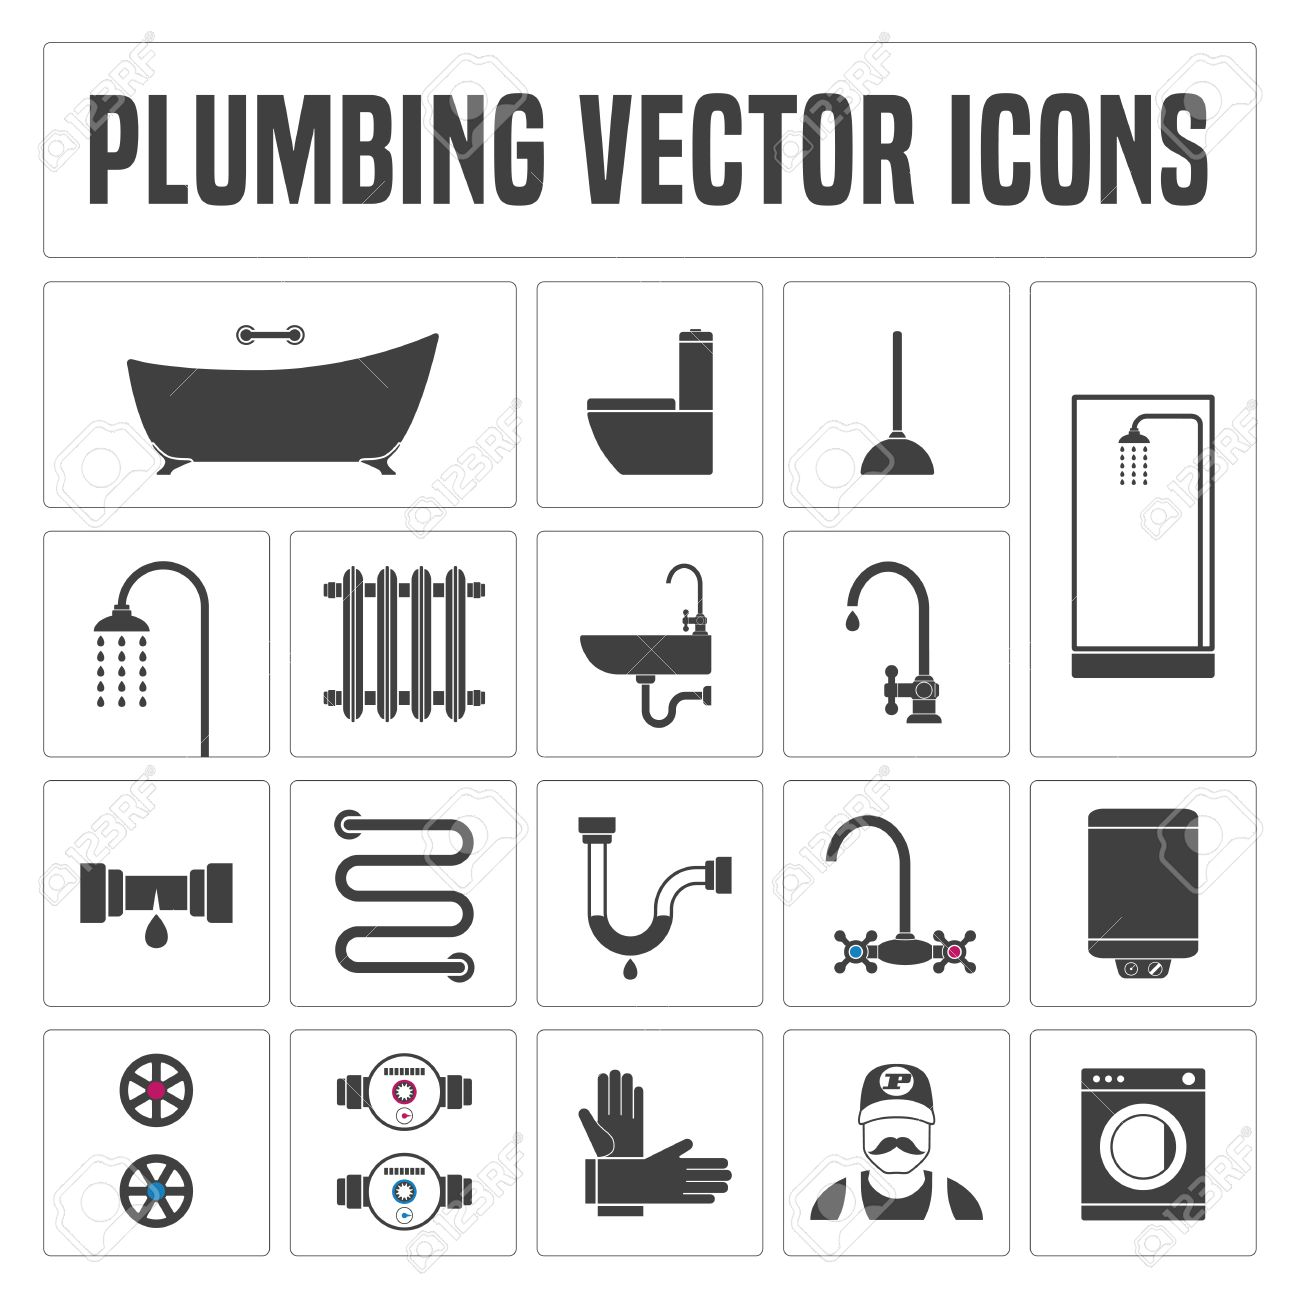 Collection Of Vector Plumbing Symbols And Icons Illustrations